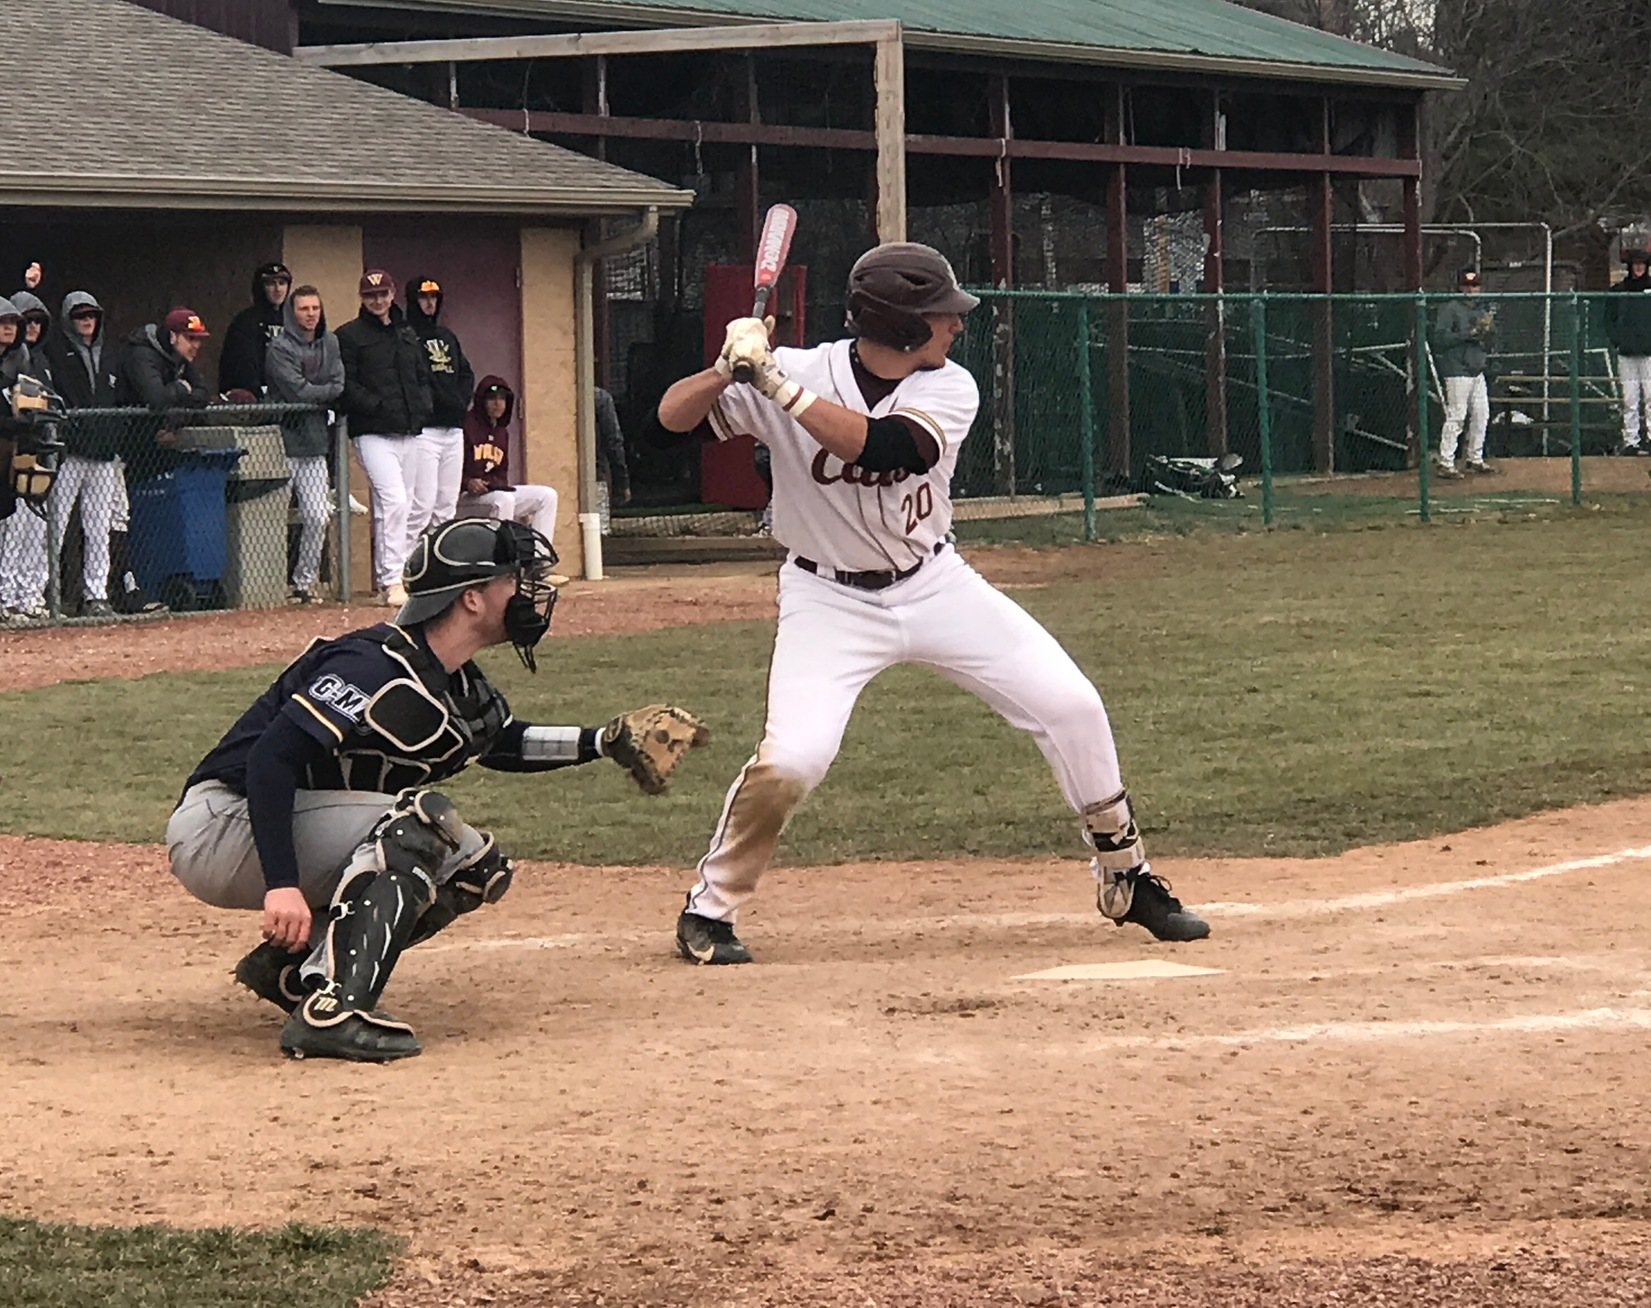 Cavs' Bats Sting In Sweep Of Cedarville